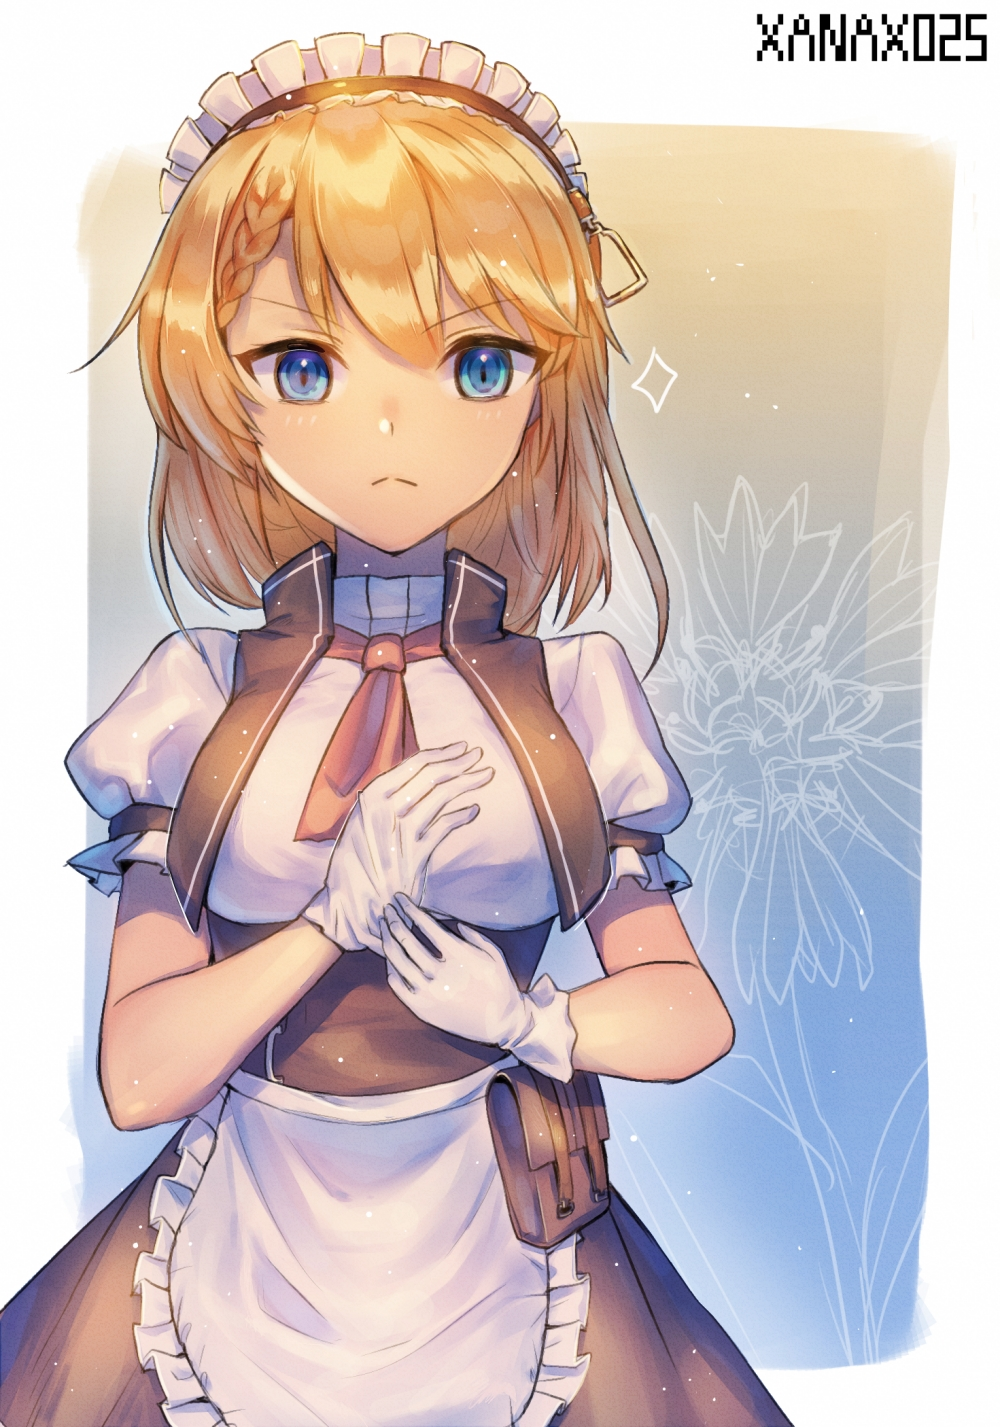 1girl apron artist_name bangs blonde_hair blue_eyes braid breasts character_request closed_mouth eyebrows_visible_through_hair french_braid frilled_apron frills girls_frontline gloves highres long_hair looking_at_viewer maid maid_apron maid_headdress medium_breasts saku_t upper_body white_apron white_gloves